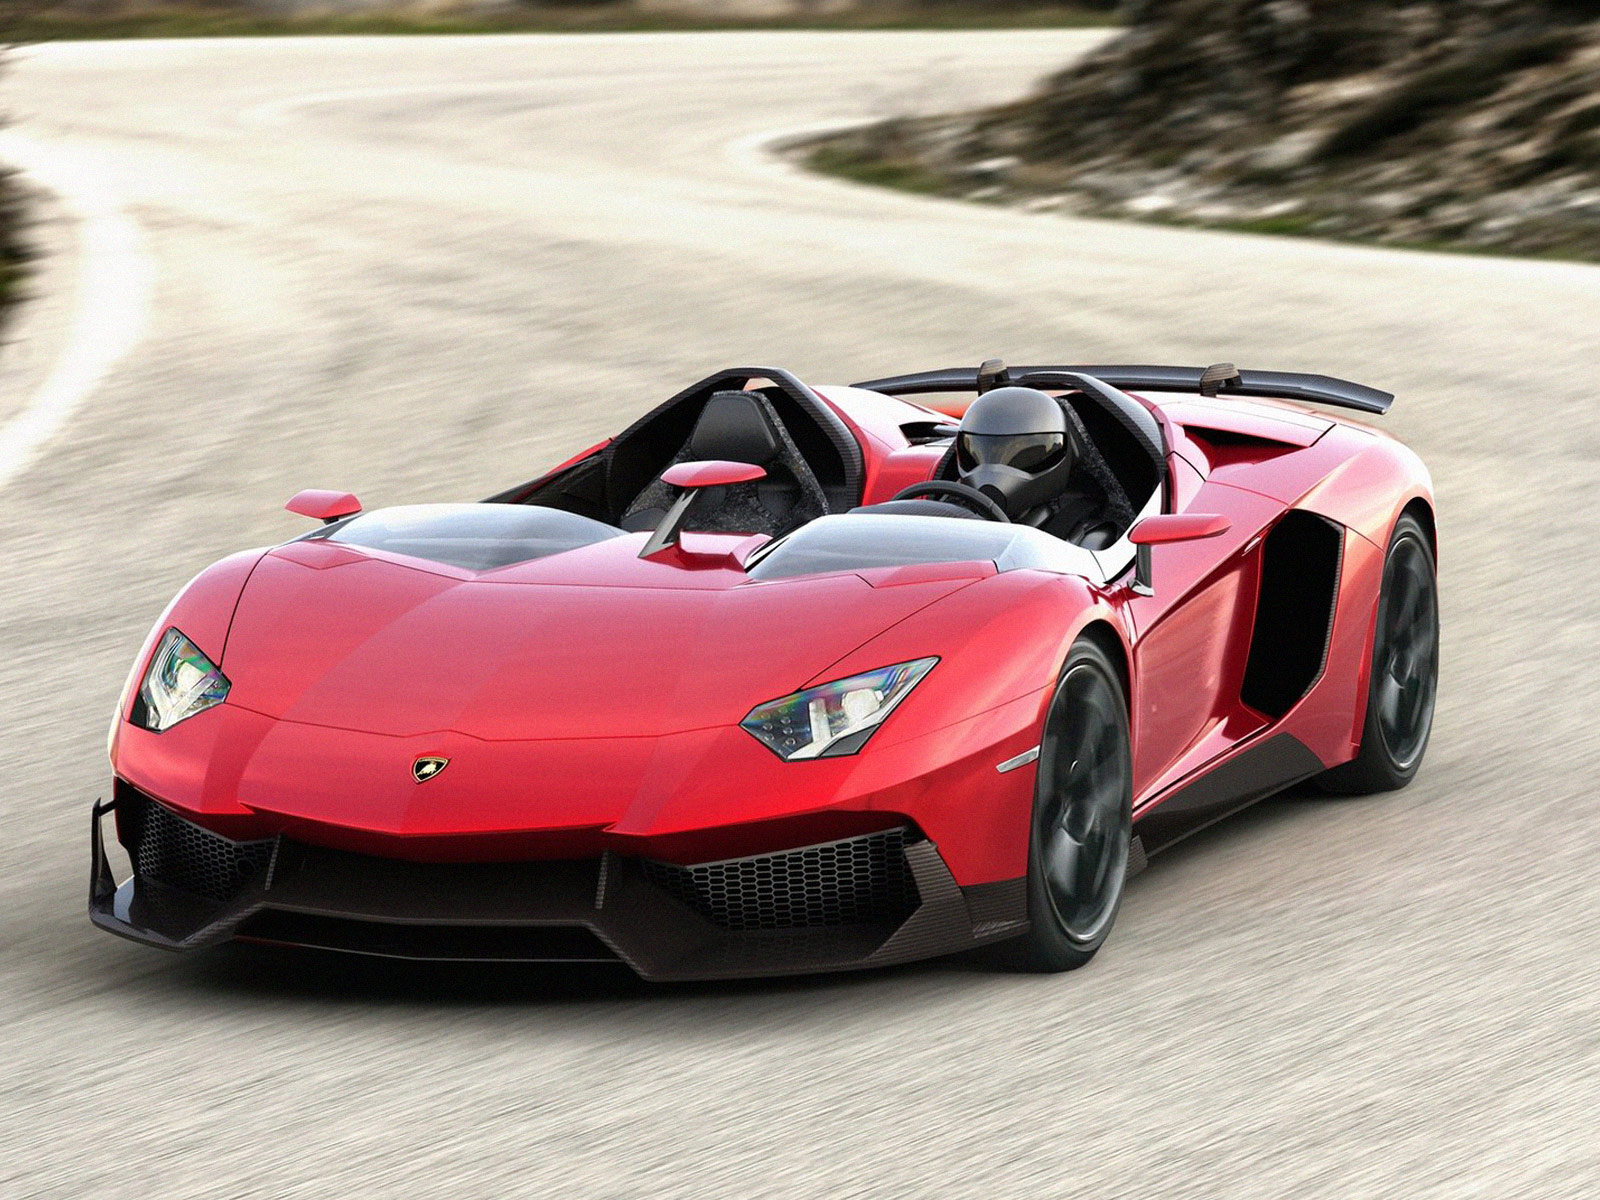 foto mobil sport lamborghini aventador j concept 2012. Black Bedroom Furniture Sets. Home Design Ideas